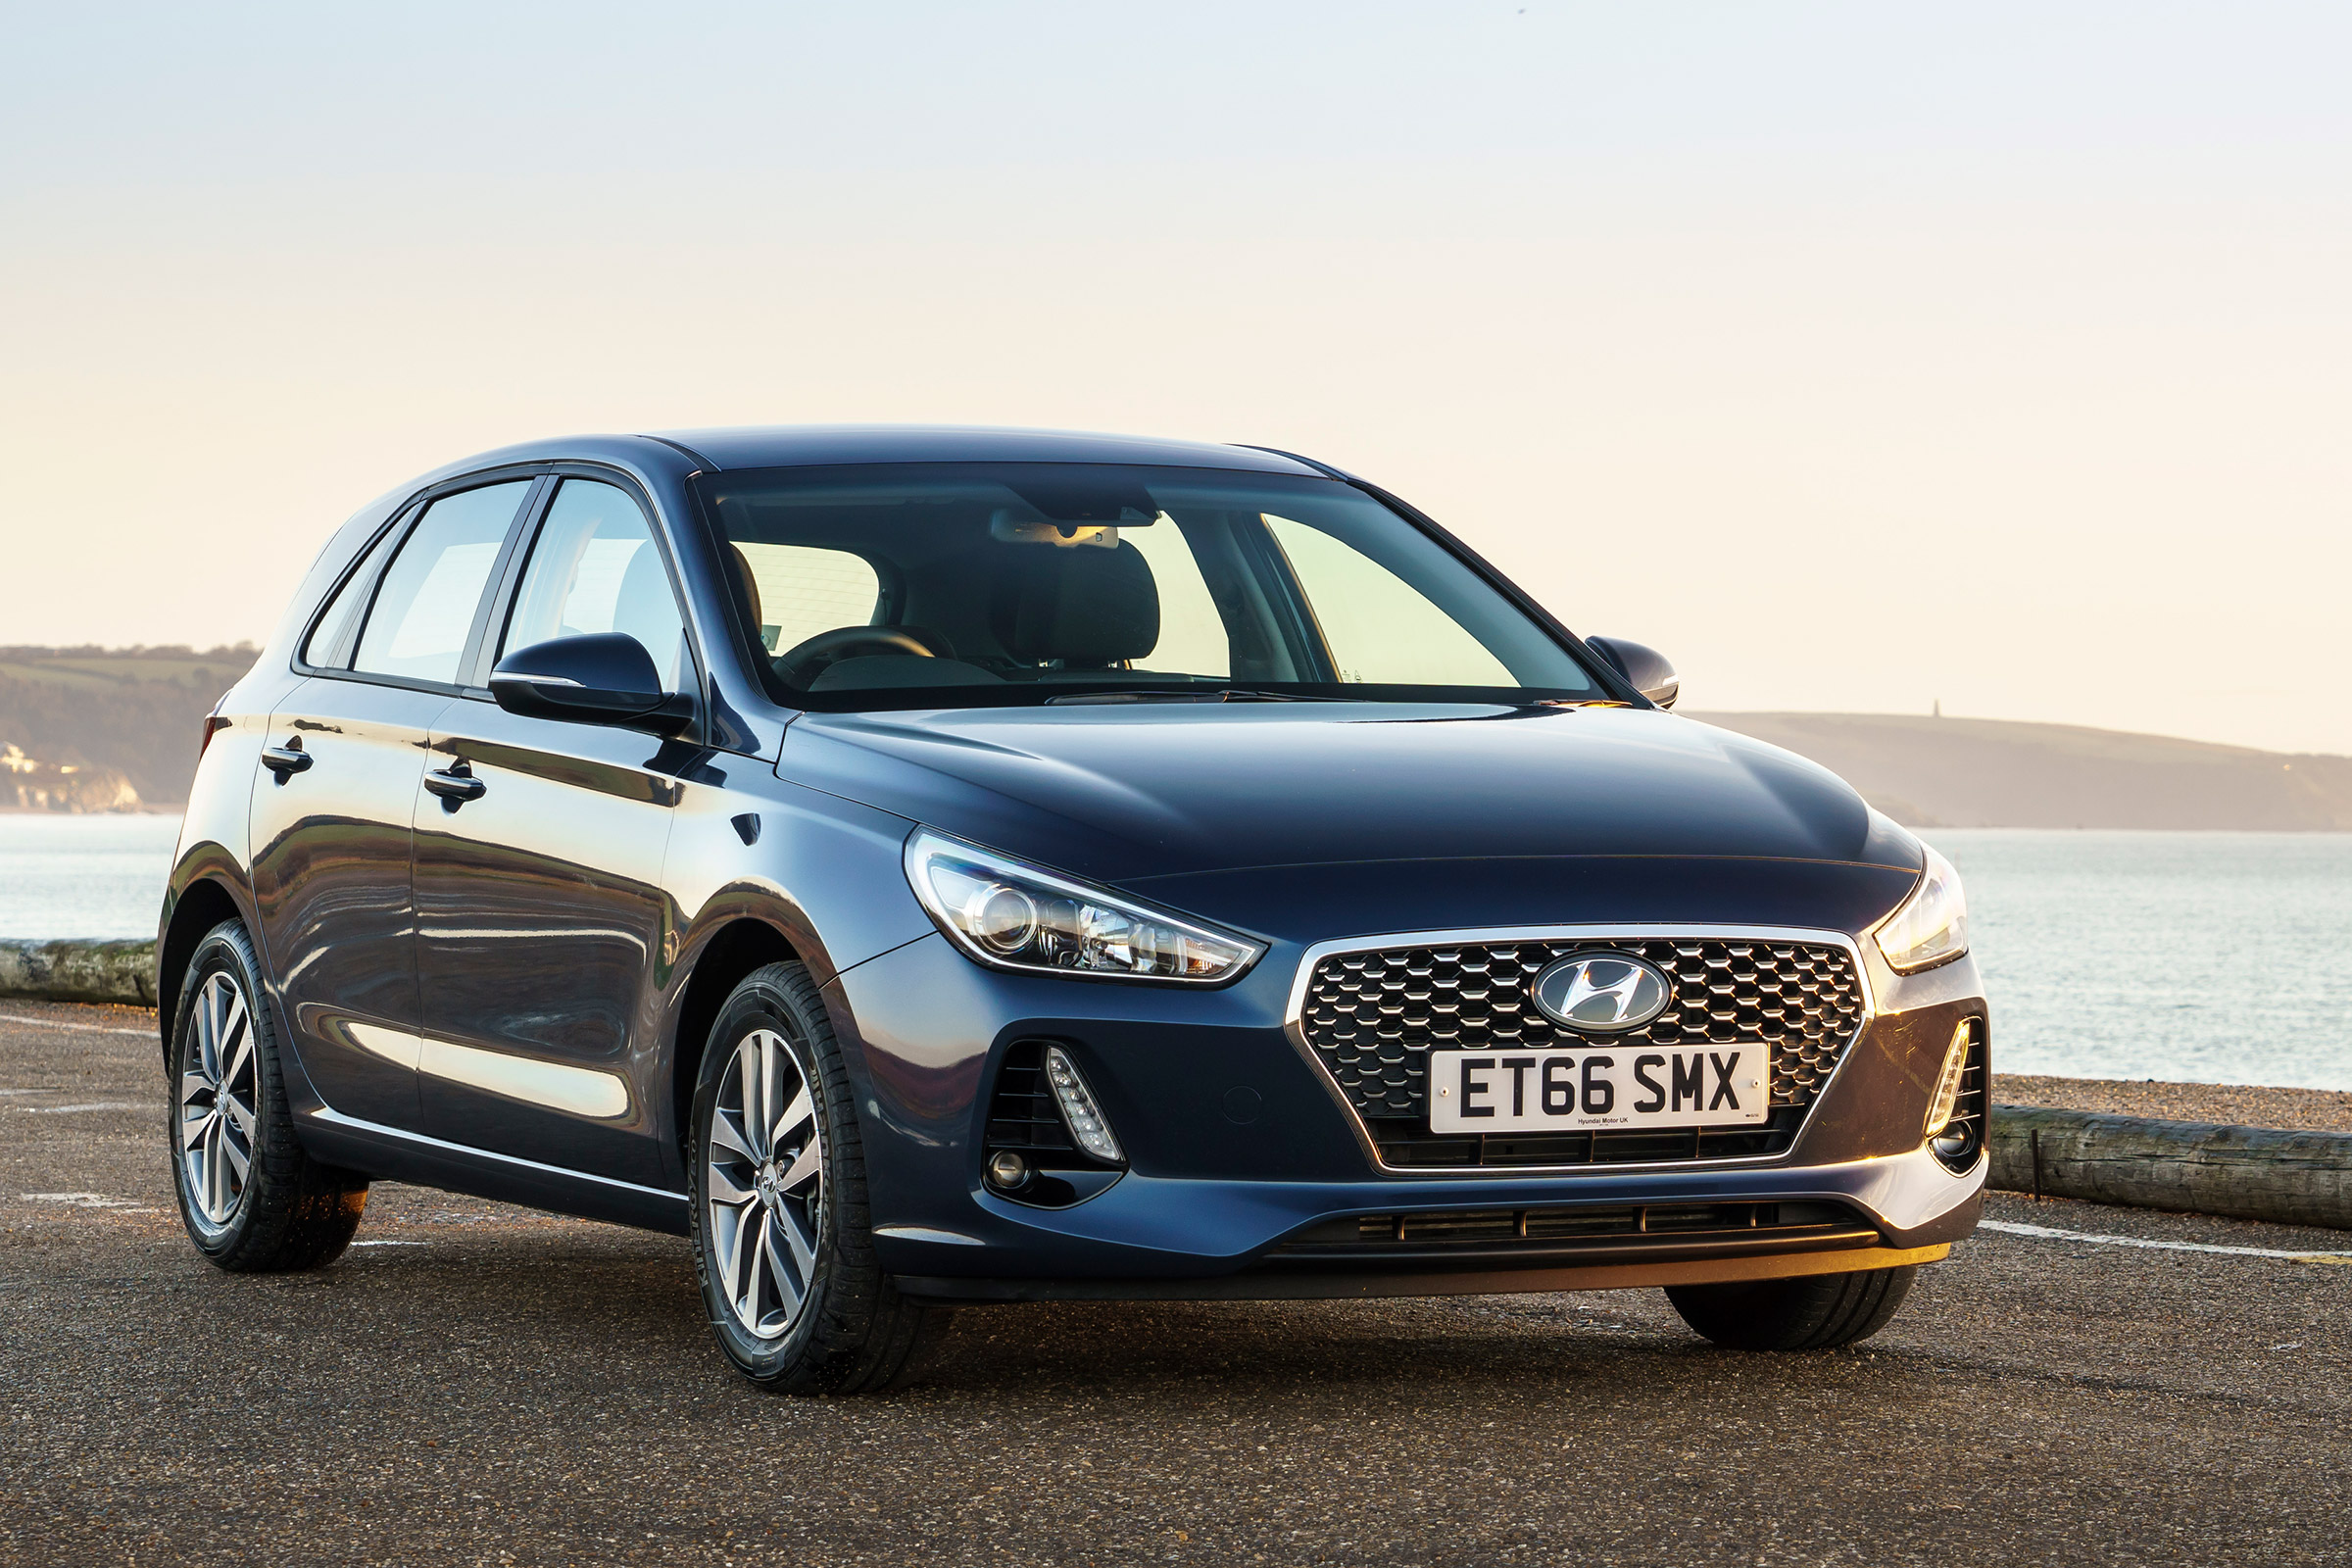 2017 Hyundai i30 Pictures Gallery (23 Images)